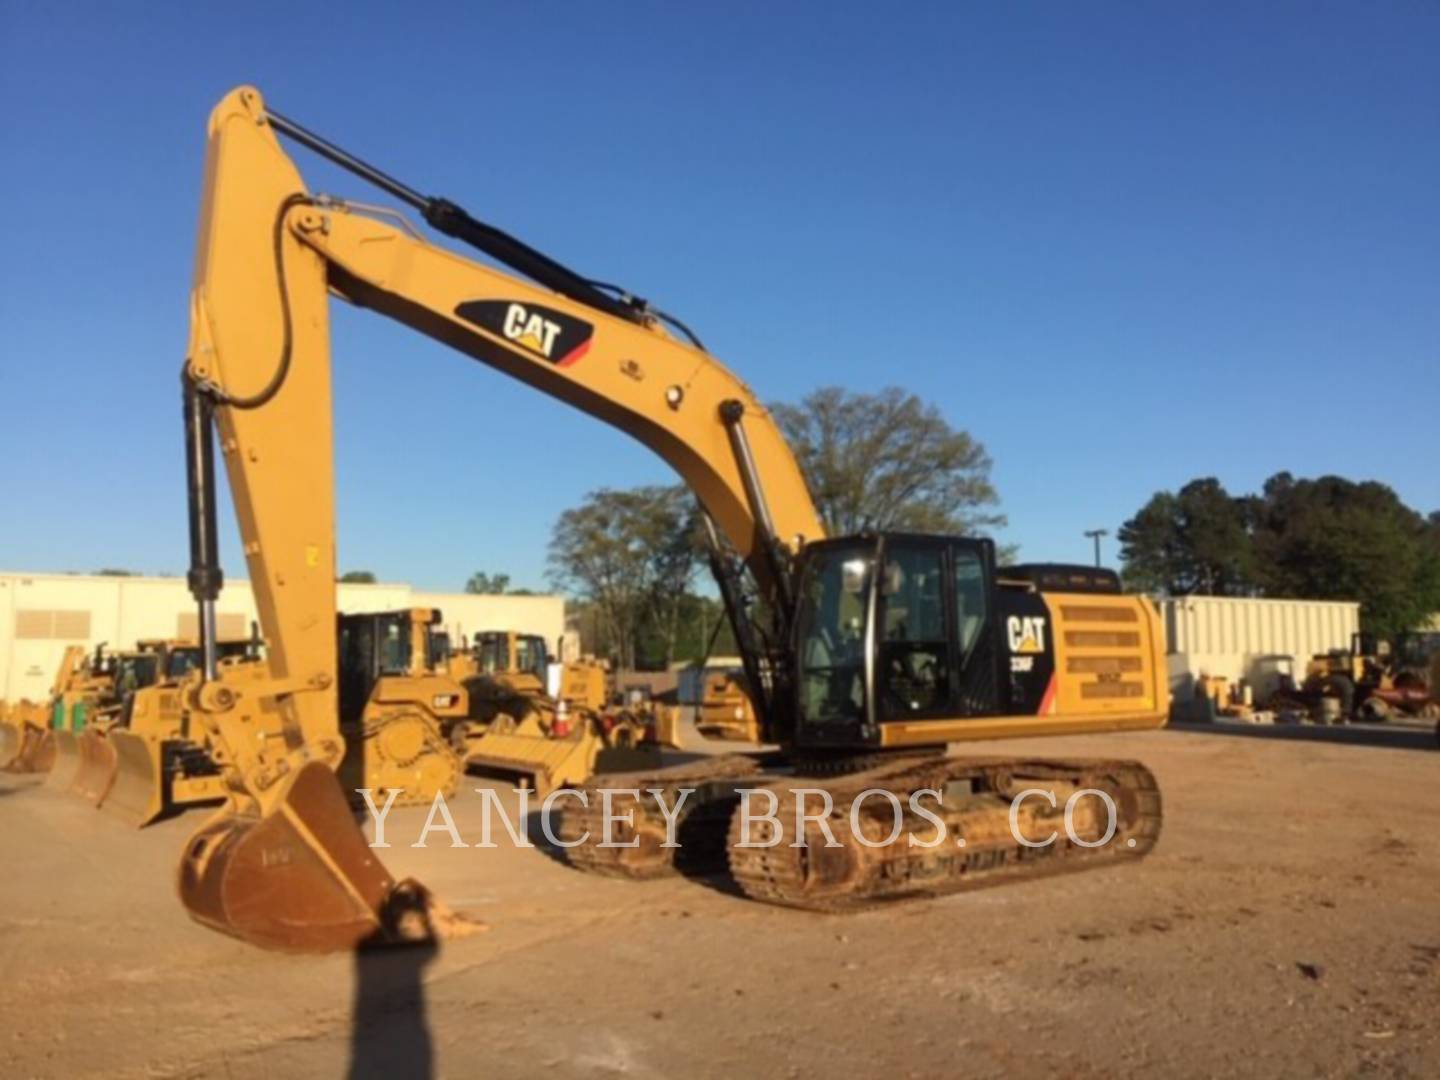 2015 - CATERPILLAR - 336FL